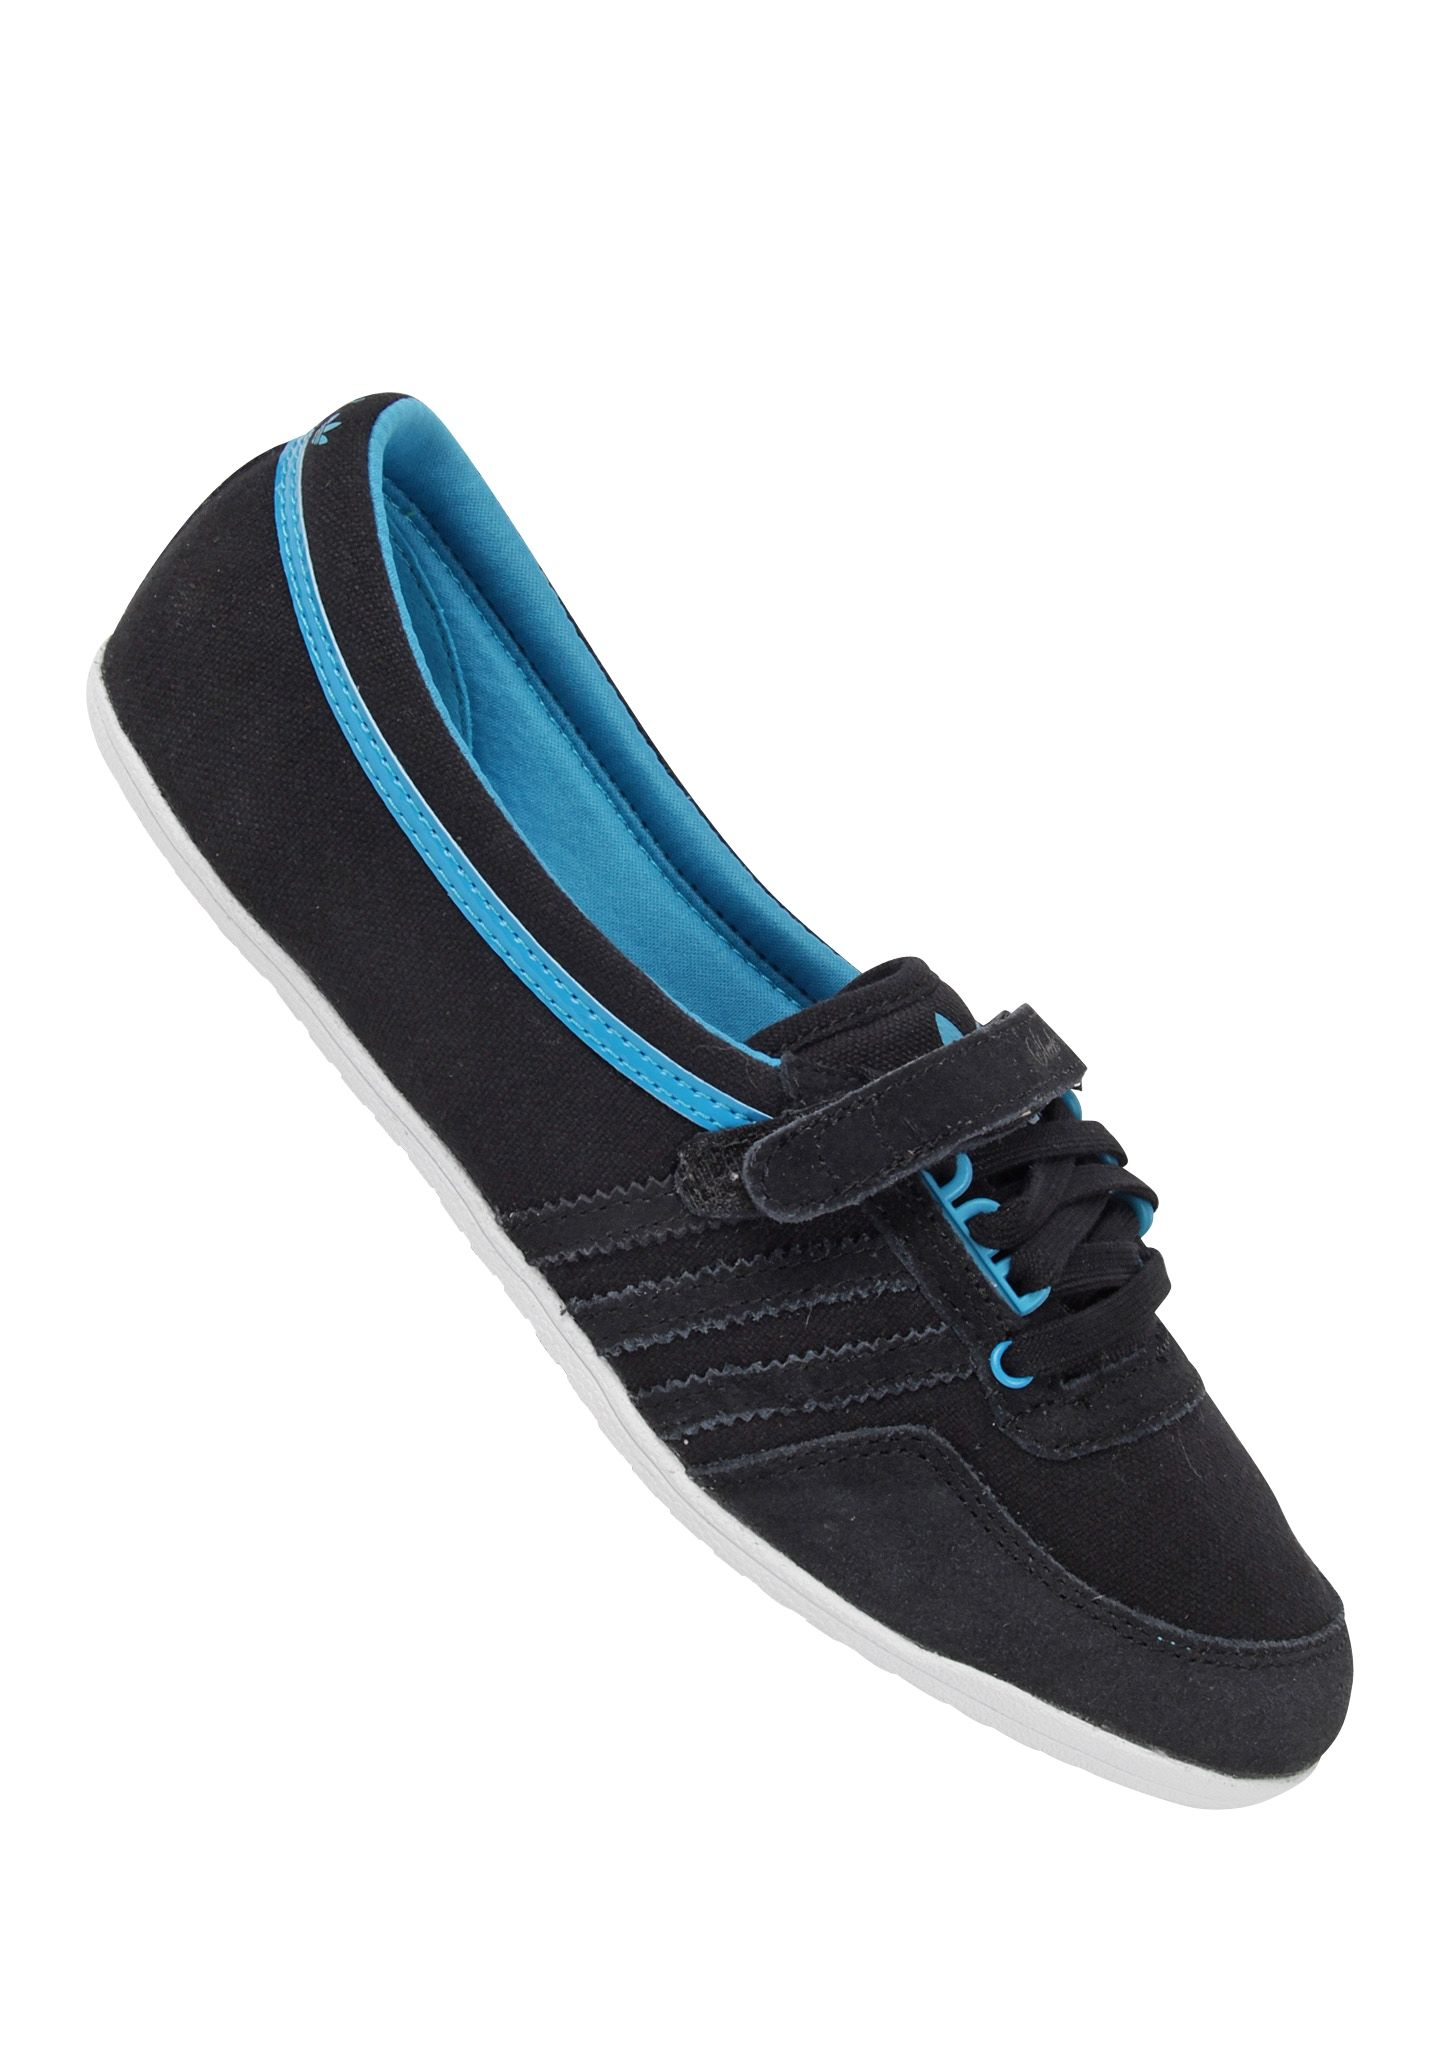 Of Adidas Basket Ballerine Images Calto At Pxprzwpq Cane Femme 5UwXqxBt